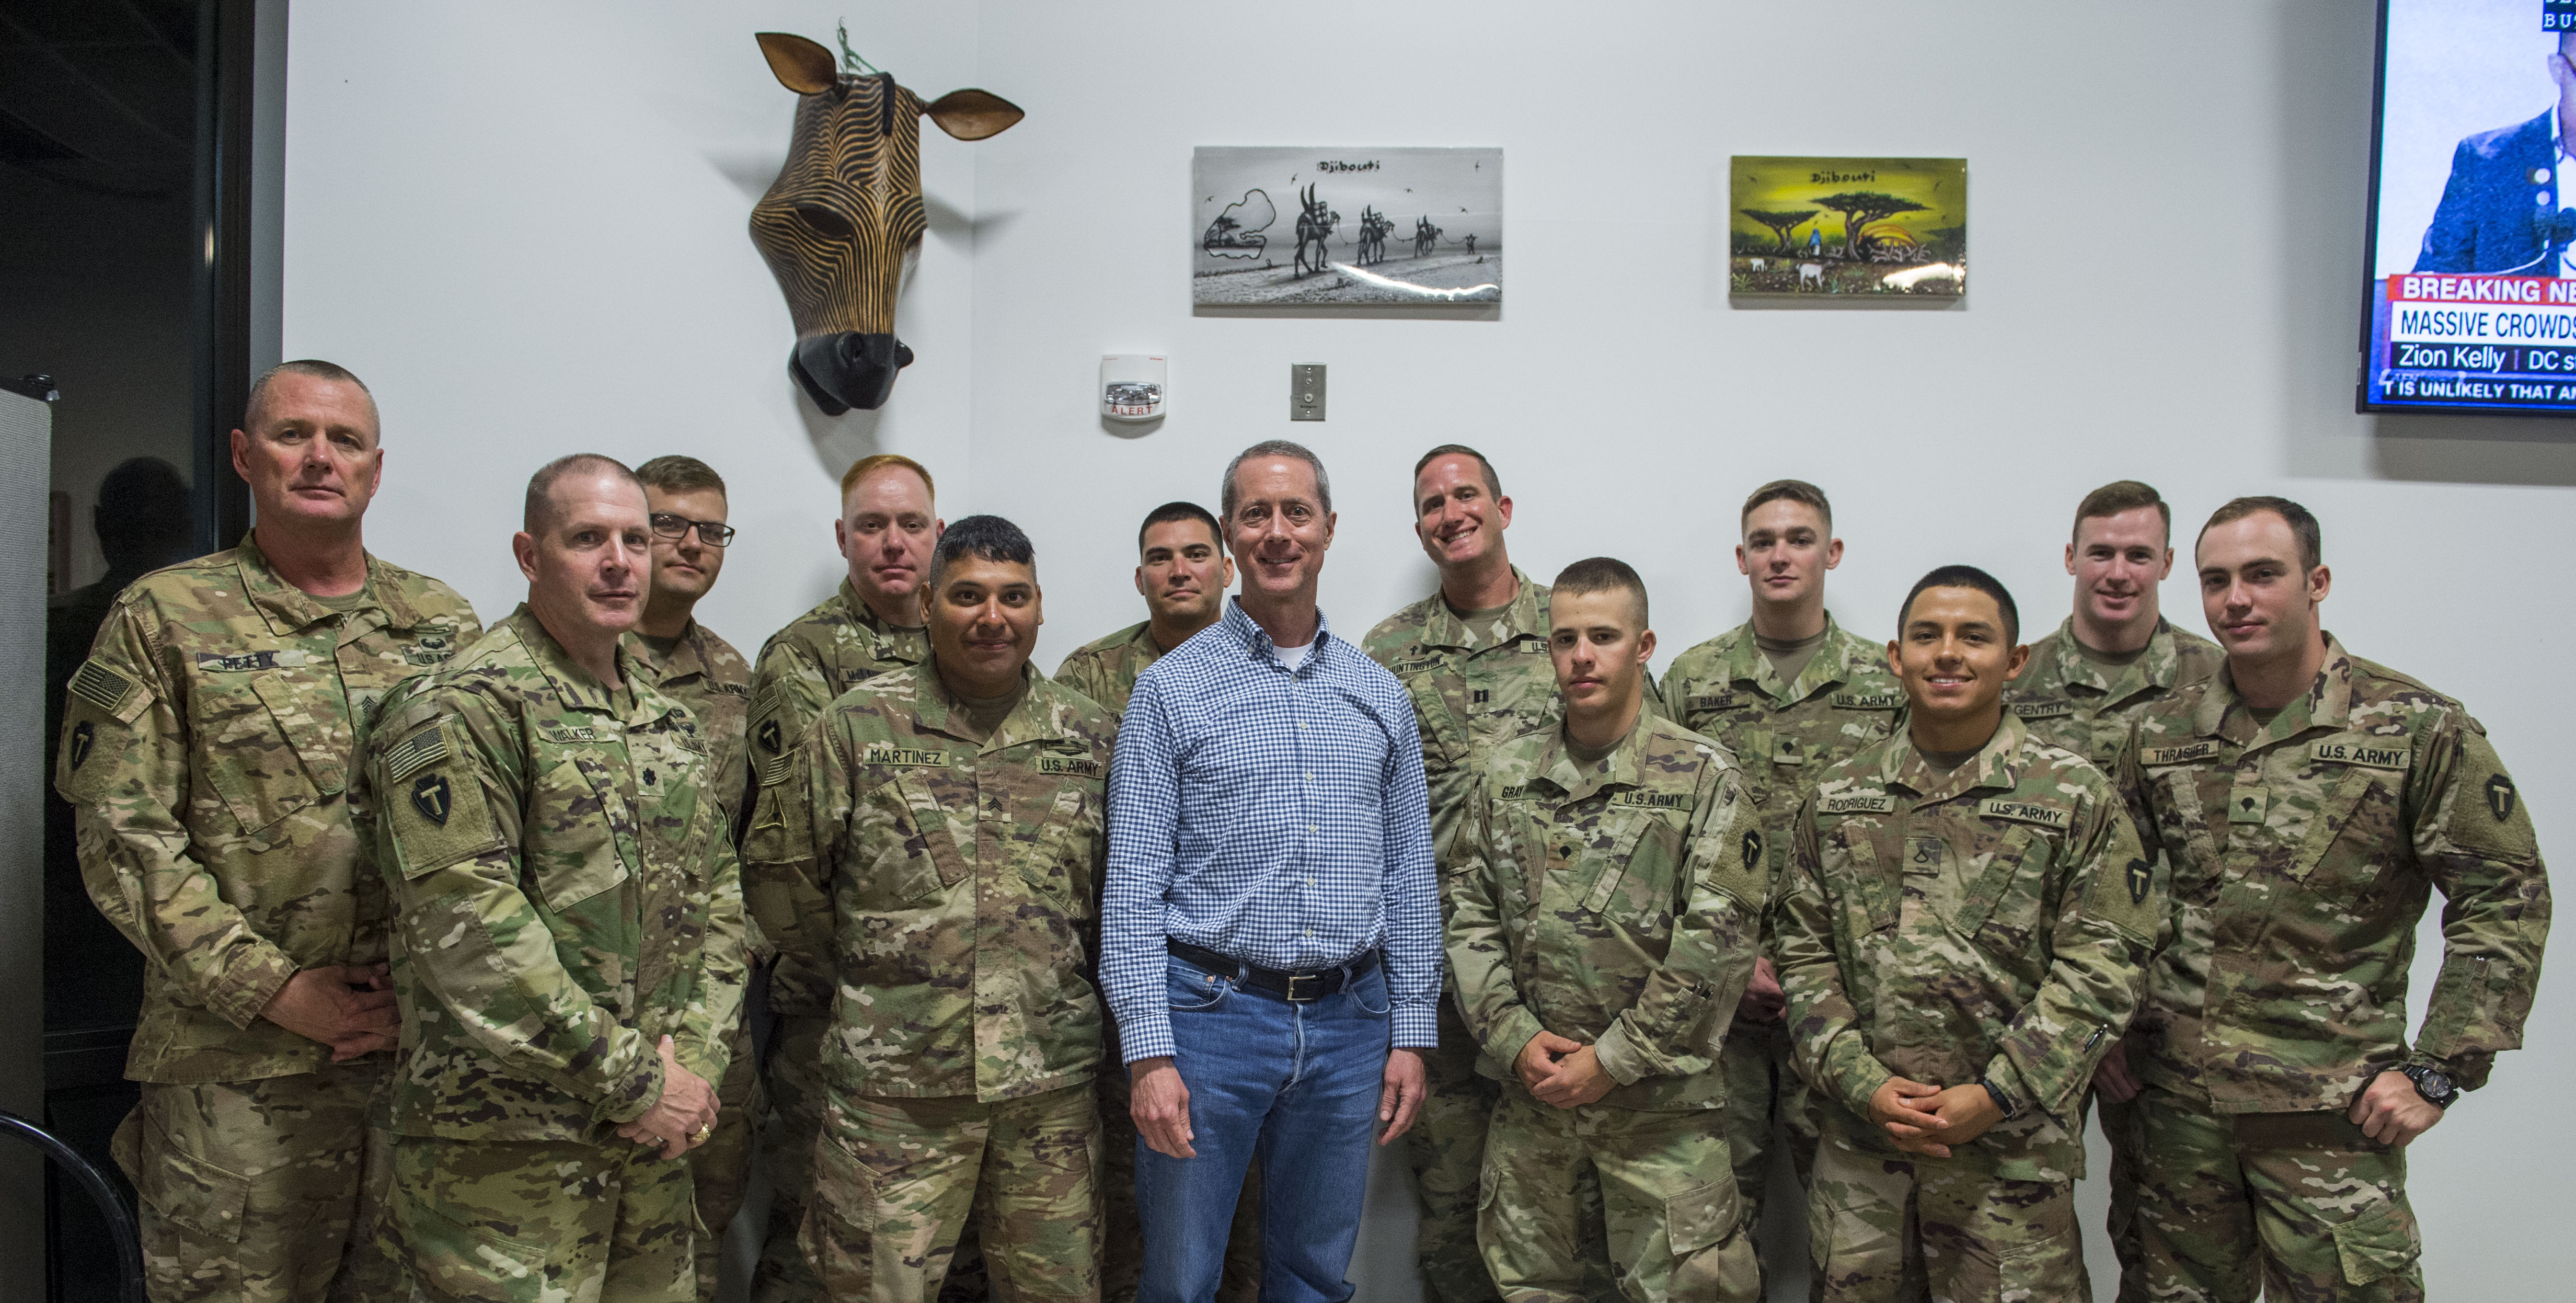 U.S. Rep. Mac Thornberry, 13th District of Texas, poses for a photo with service members deployed to Camp Lemonnier, Djibouti, during a visit to the Combined Joint Task Force - Horn of Africa (CJTF-HOA) March 24, 2018. Thornberry, who is the U.S. House of Representatives Armed Services Committee Chairman, stopped by Camp Lemonnier before visiting other locations within the CJTF-HOA area of responsibility. The Armed Services Committee has the responsibility to oversee the Pentagon, all military services, and all Department of Defense agencies, including their budgets and policies. (U.S. Air Force photo by Staff Sgt. Timothy Moore)